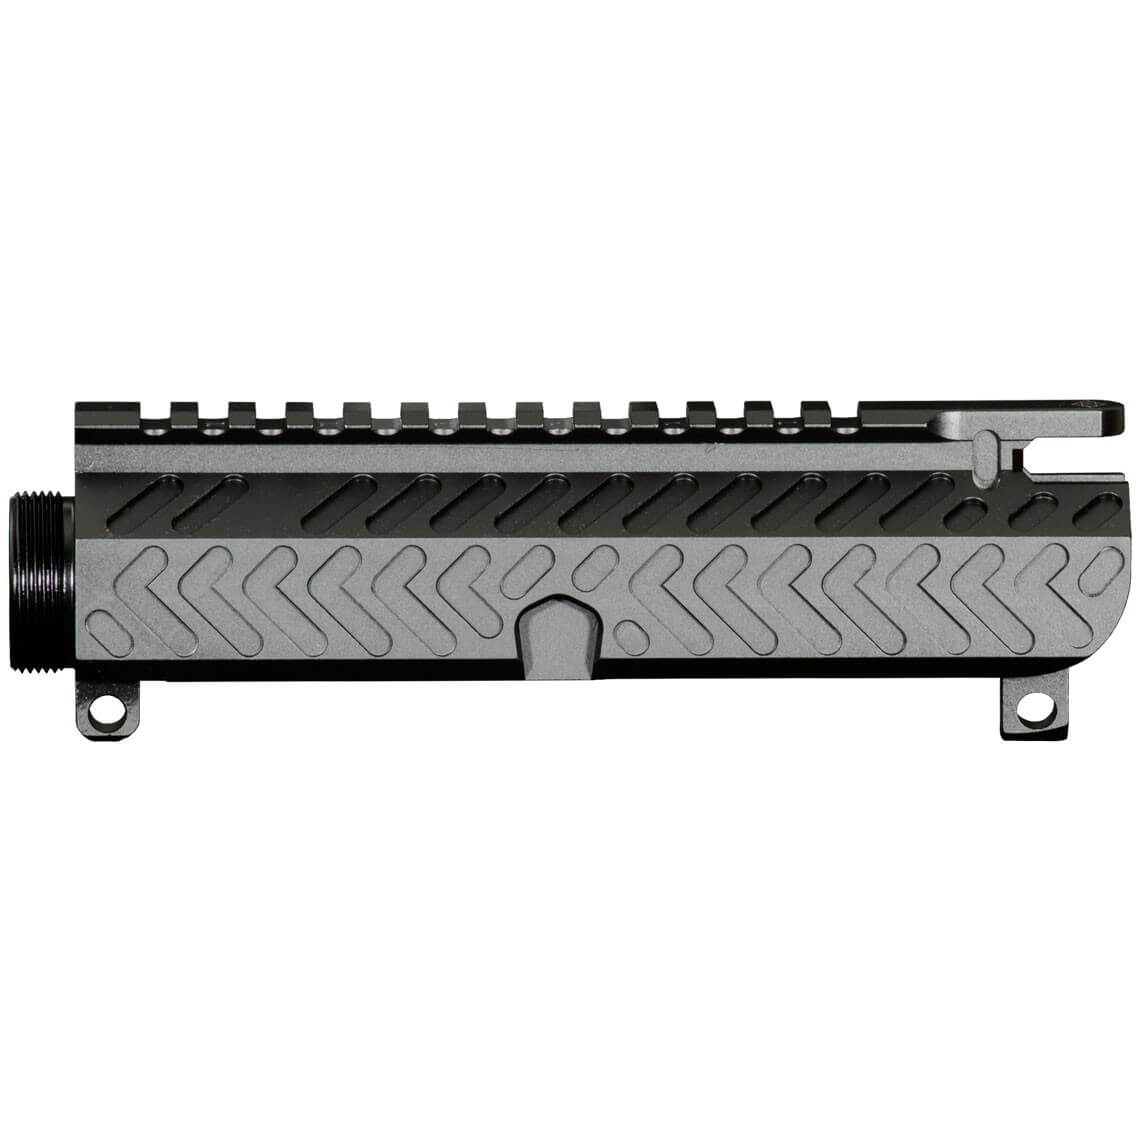 YHM Yankee Hill Machine Billet Upper AR15 Receiver Mod 2 AR-15